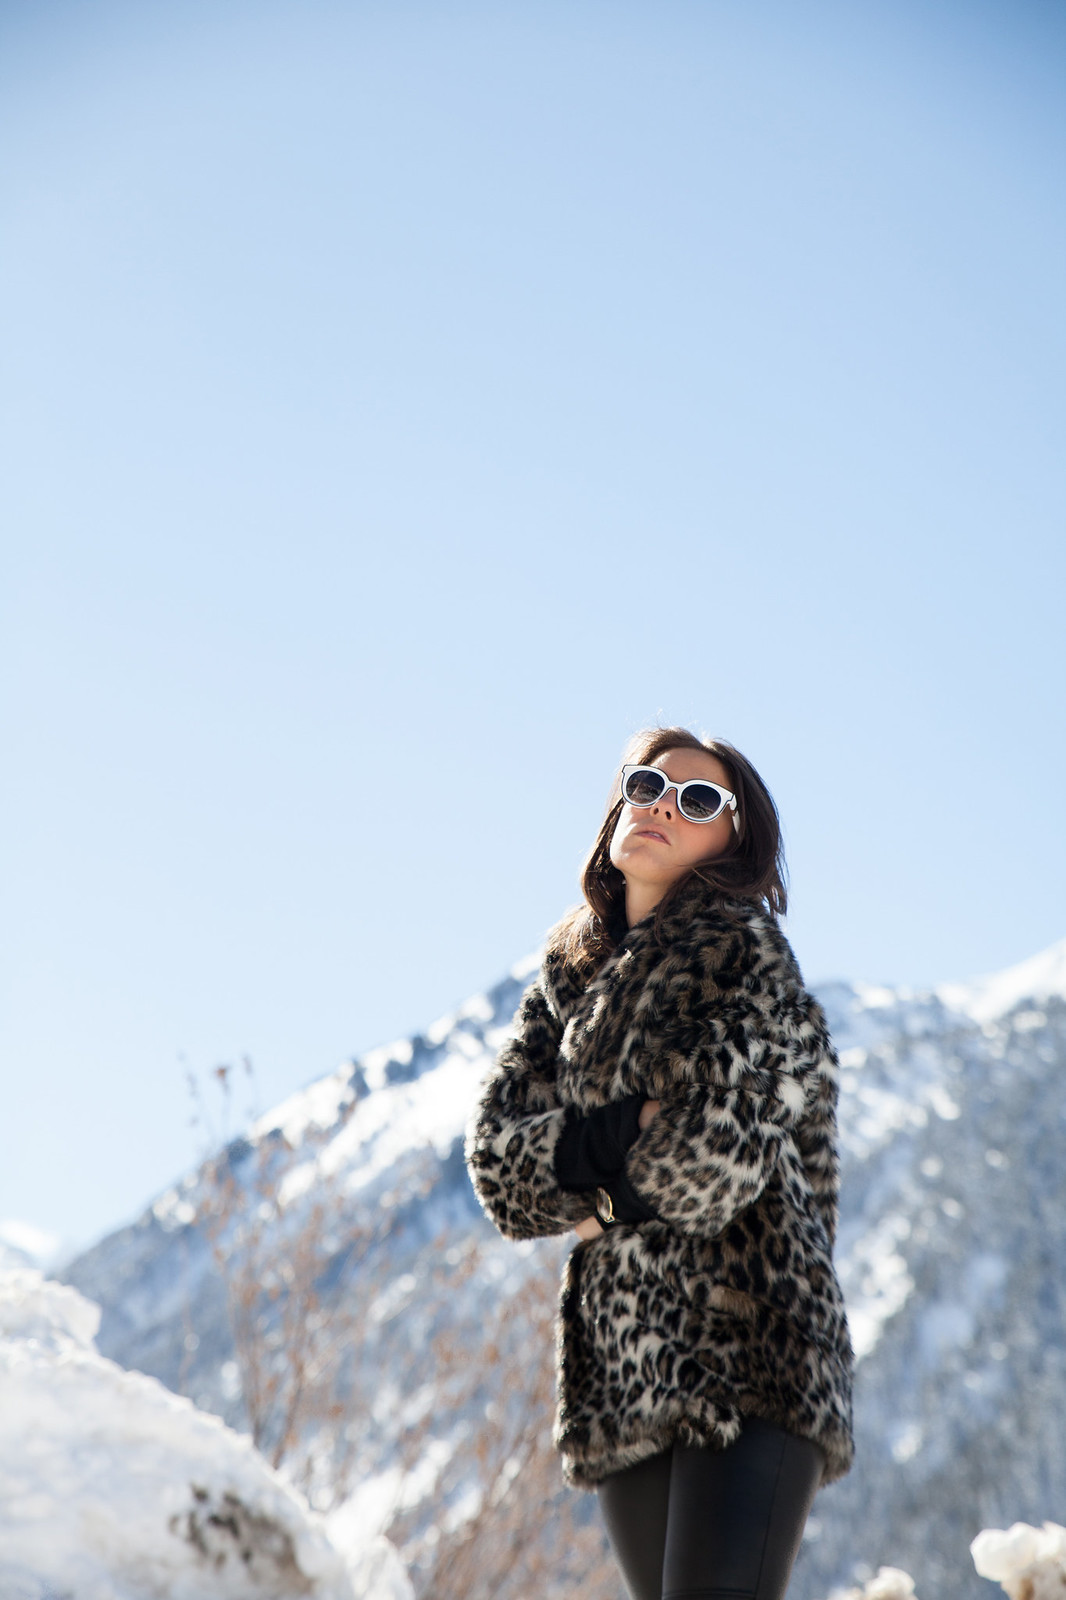 CÓMO COMBINAR LOOK ABRIGO DE LEOPARDO look and chic style snow the guest girl noholita dulceida sincerely jules lovelypepa laura influencer theguestgirl baqueira influencer barcelona look leopard coat faux fur ariviere